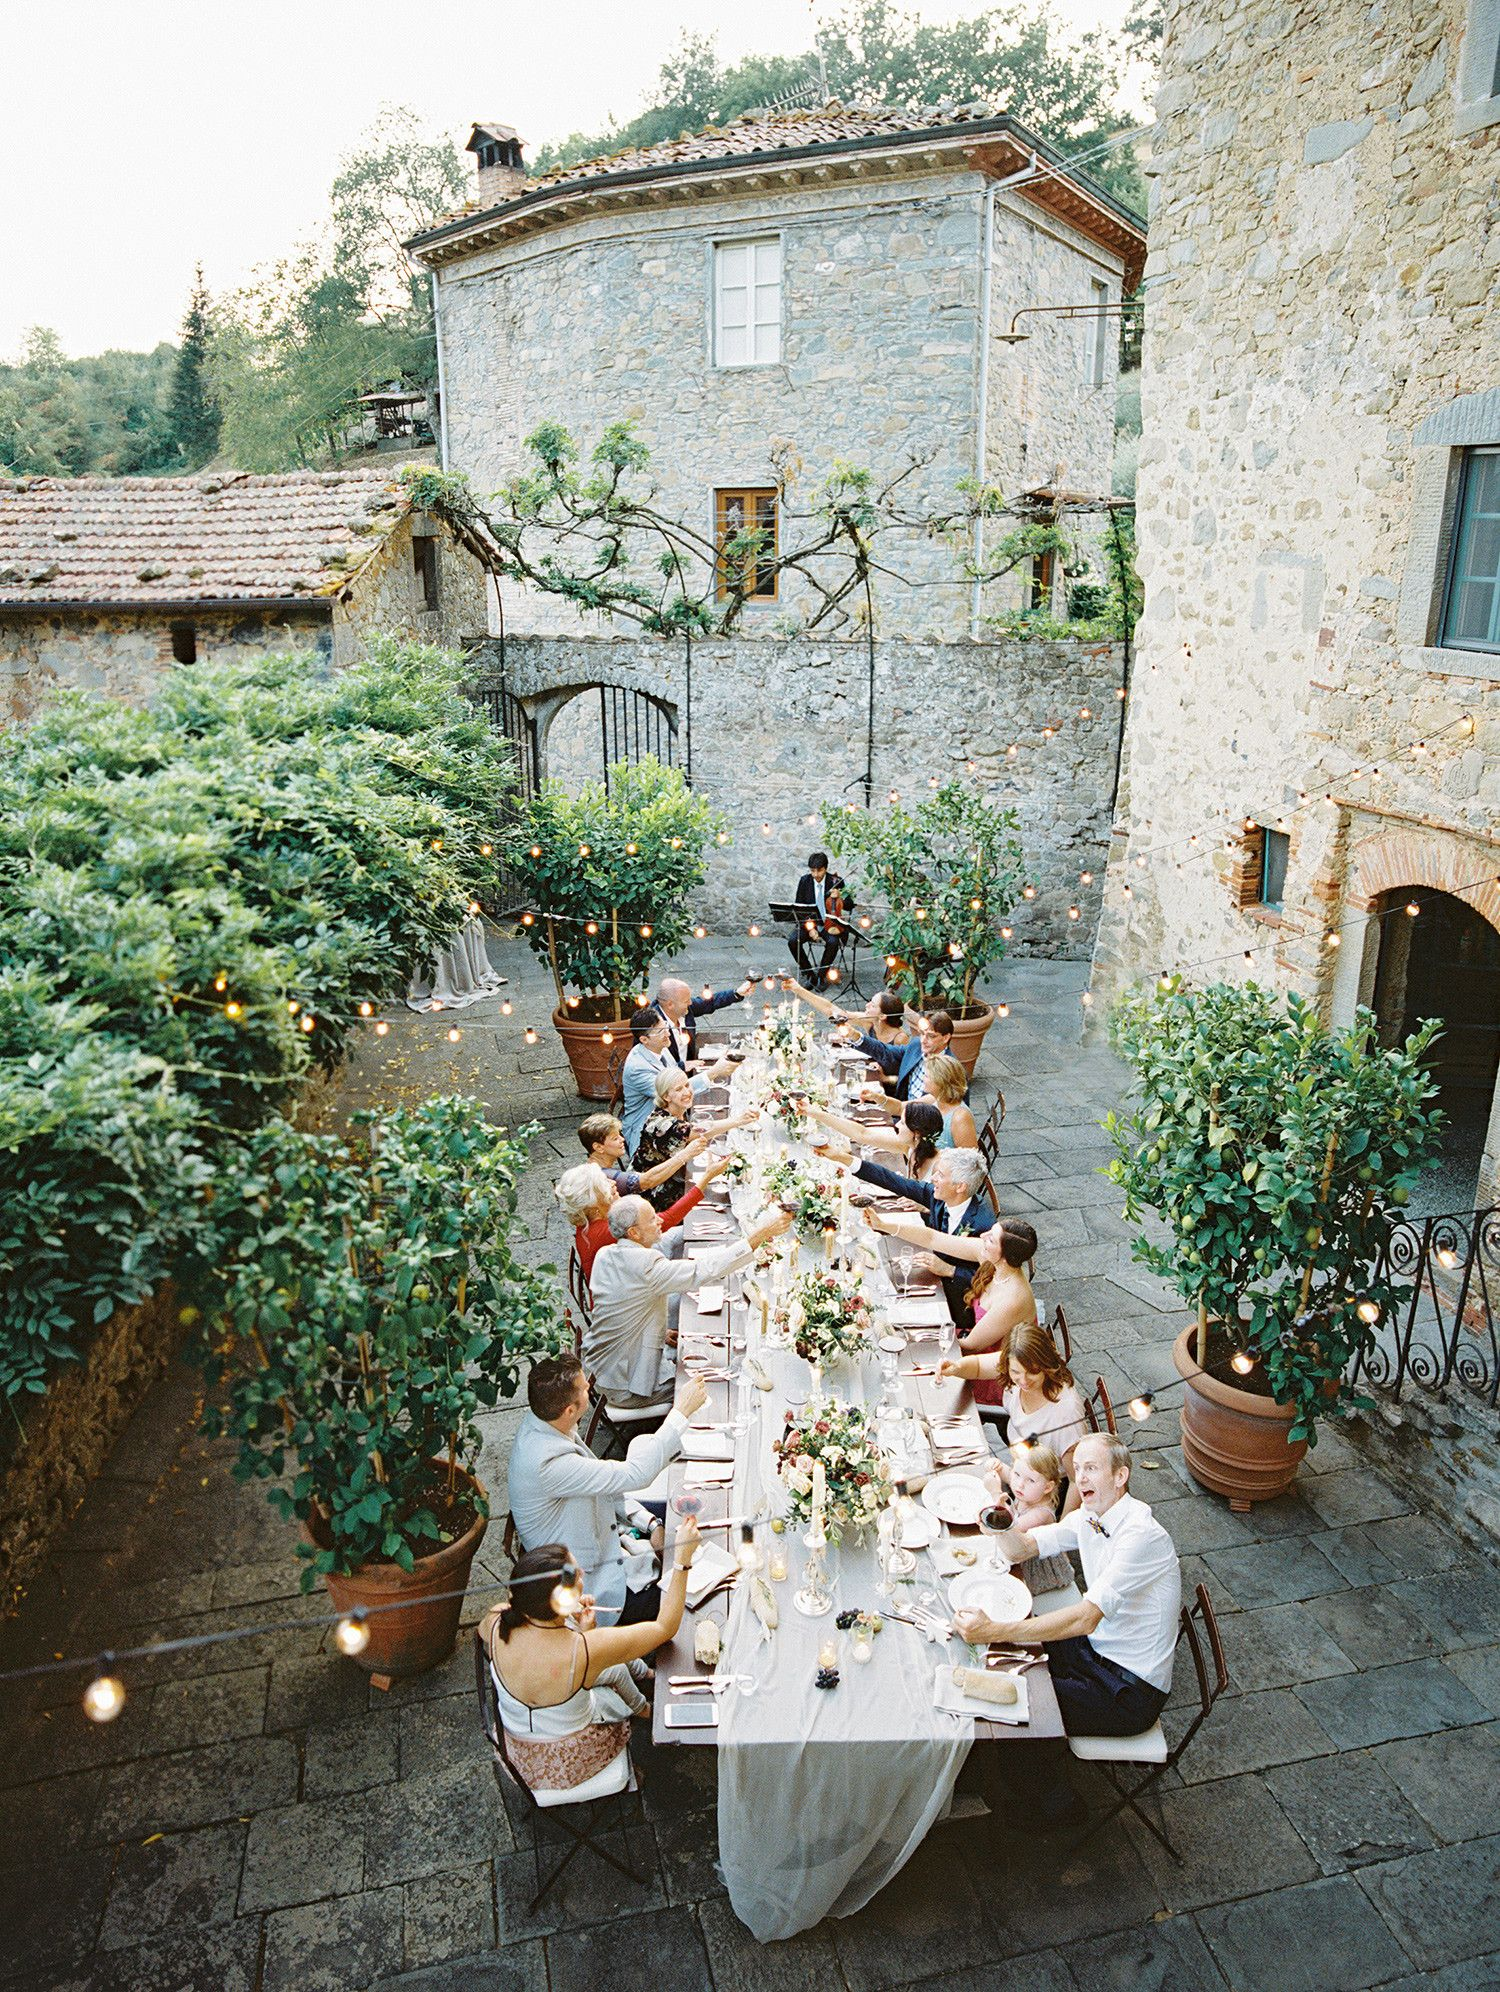 This Intimate Destination Wedding in Tuscany Had Just 16 Guests is part of Tuscany wedding - With just 16 guests in attendance, one couple traveled to Tuscany, Italy, for an intimate destination wedding  The couple celebrated with an elegant multicourse dinner served ata gorgeous receptioninspired by the Italian countryside